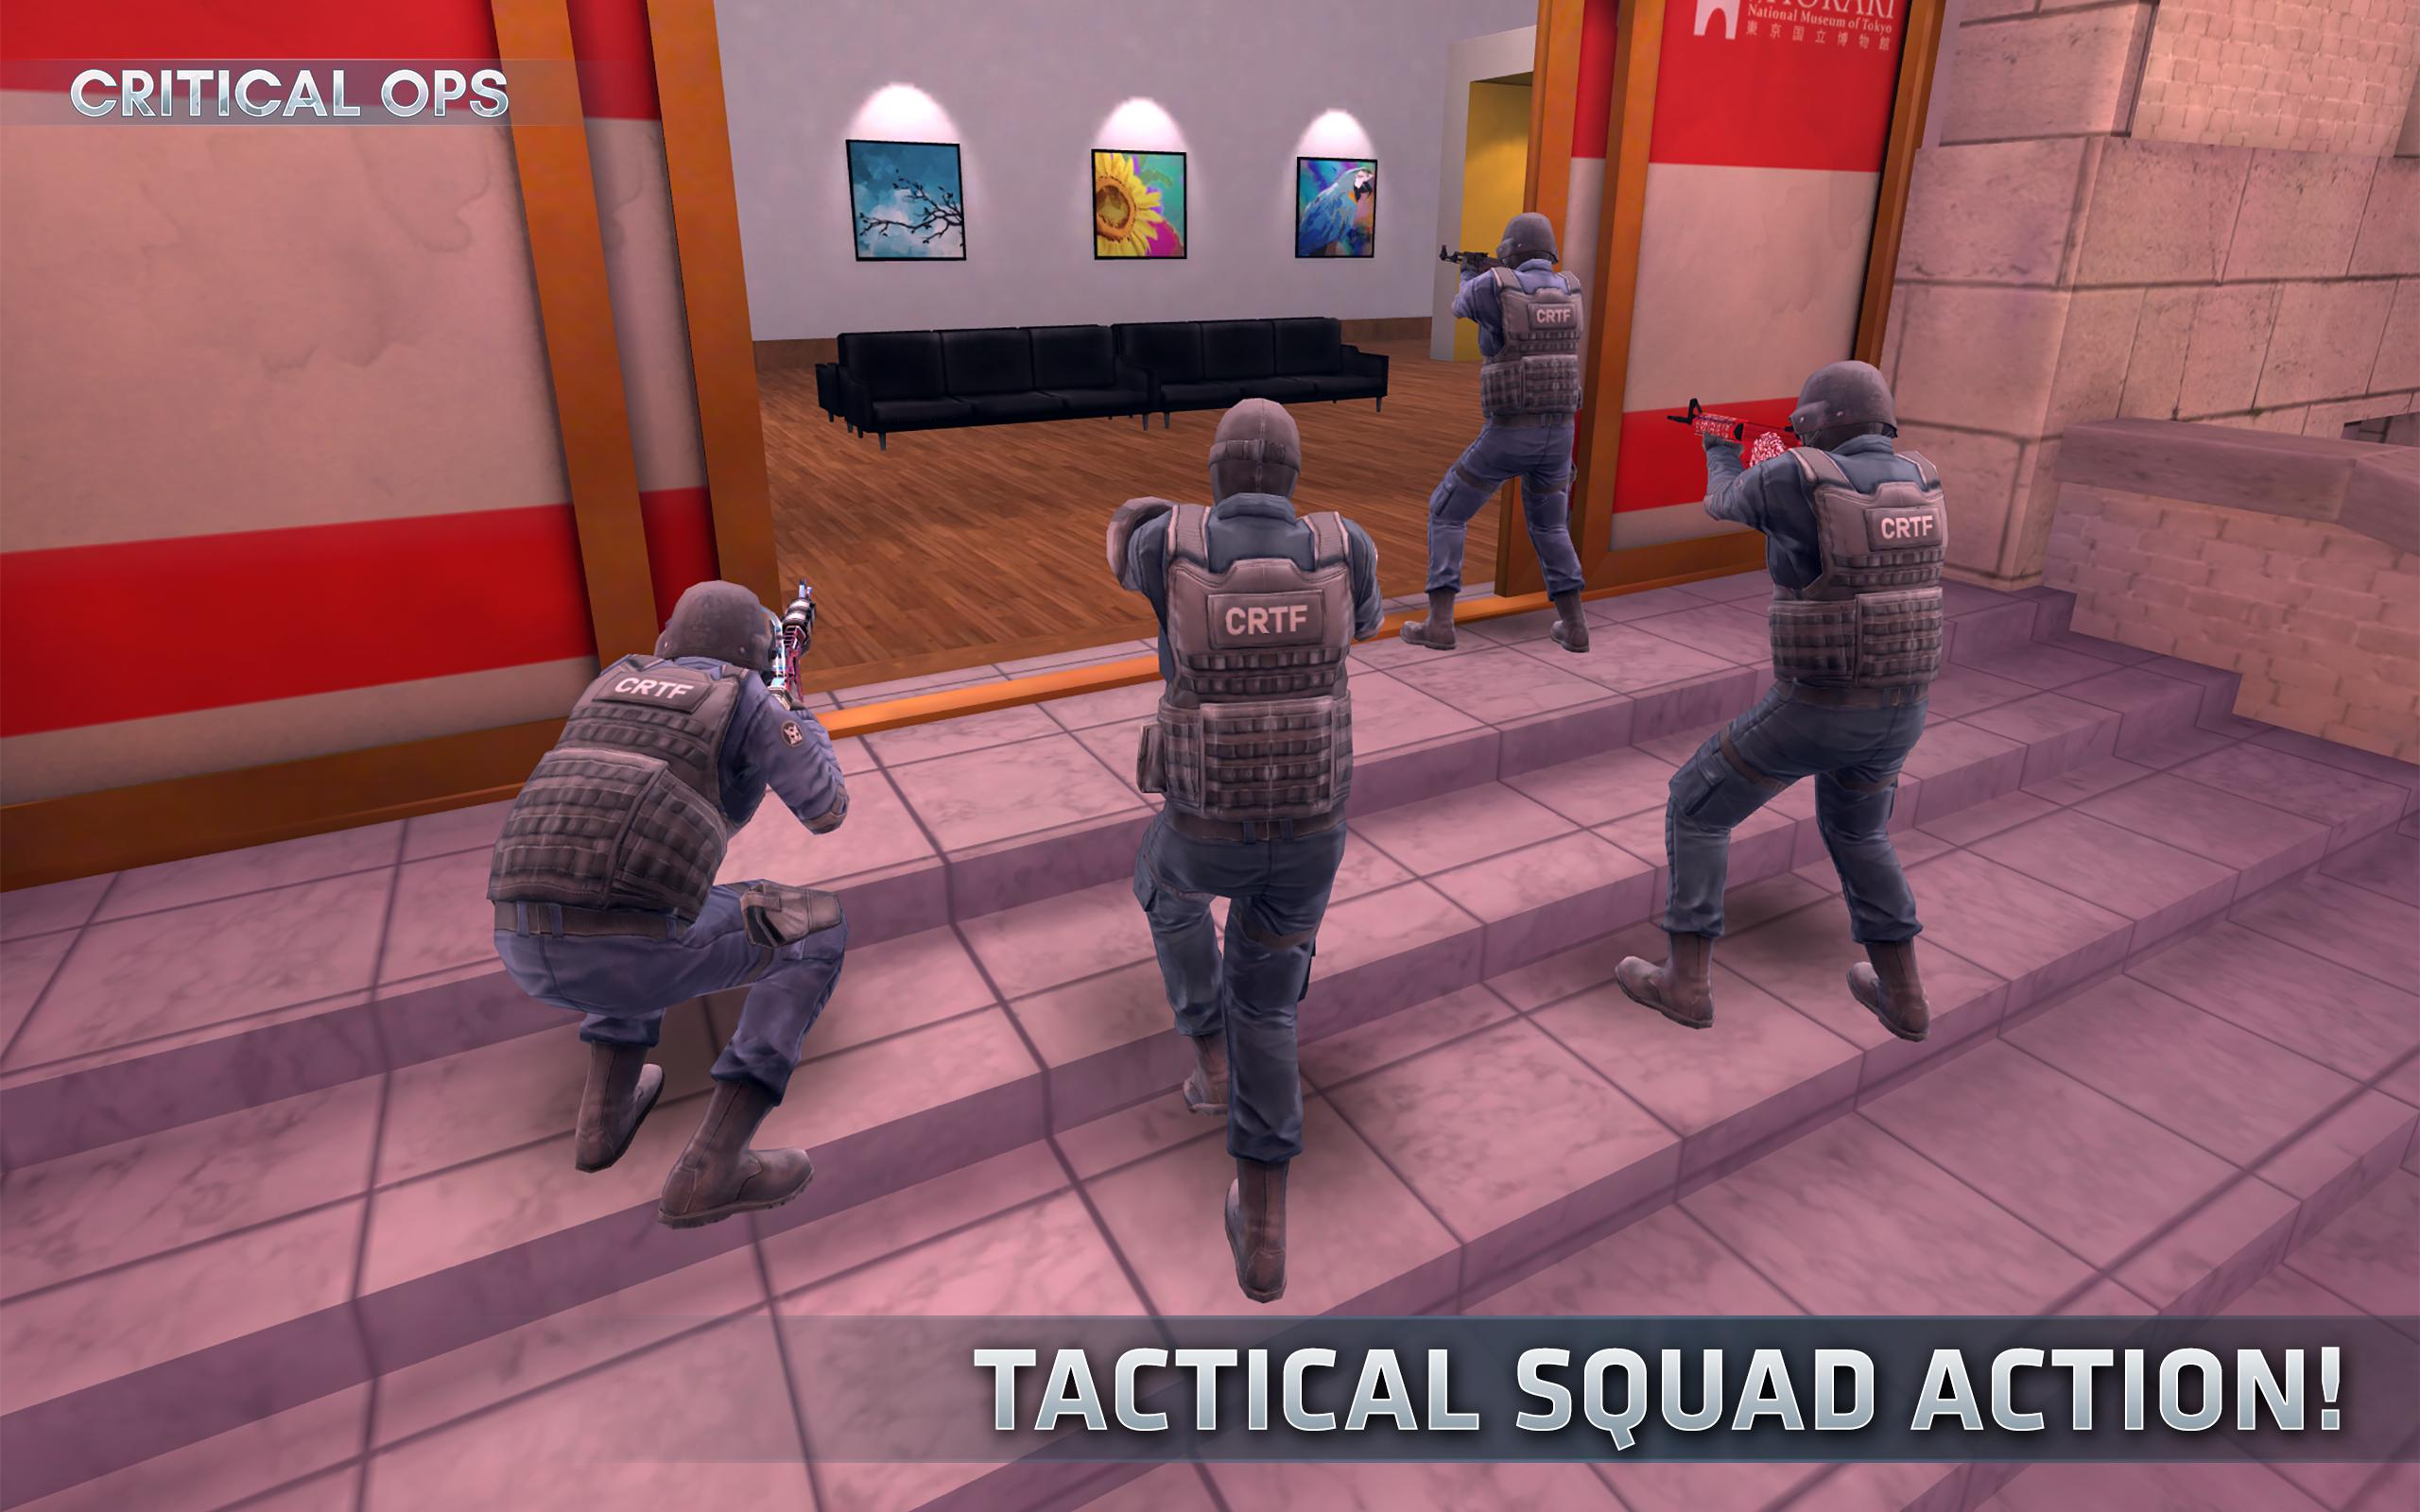 Critical Ops for Android - APK Download